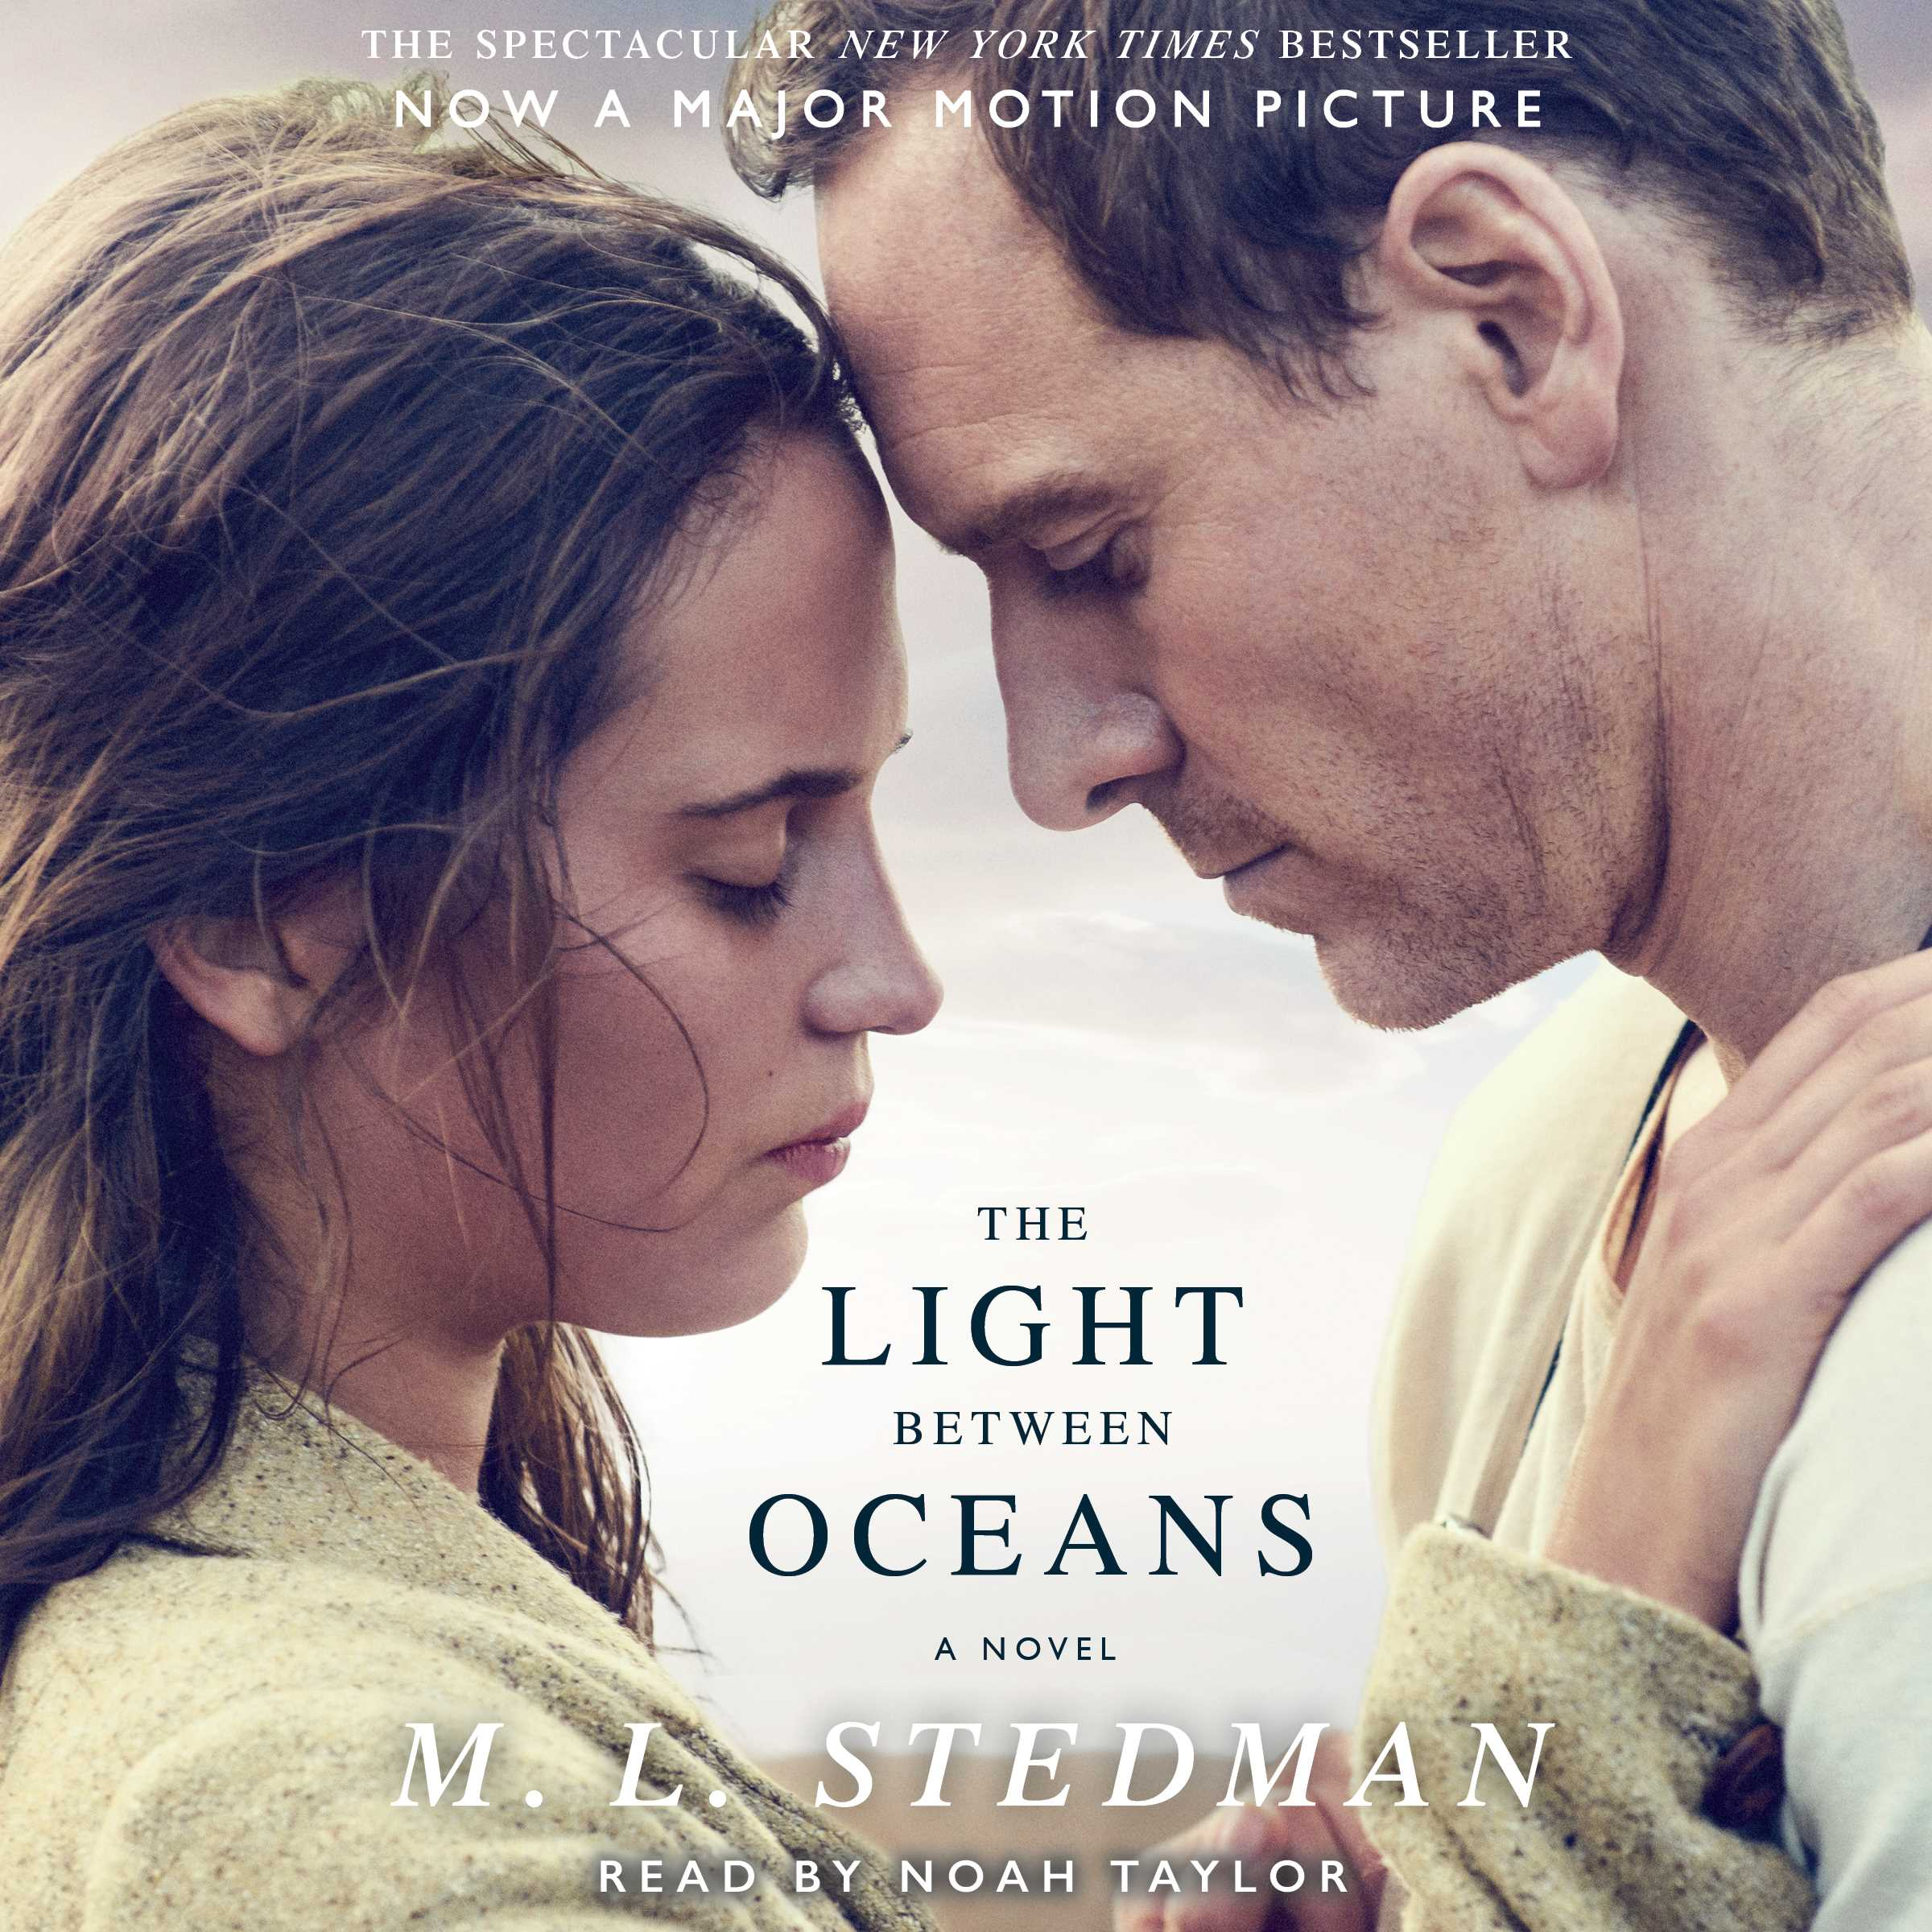 The light between oceans 9781442350304 hr